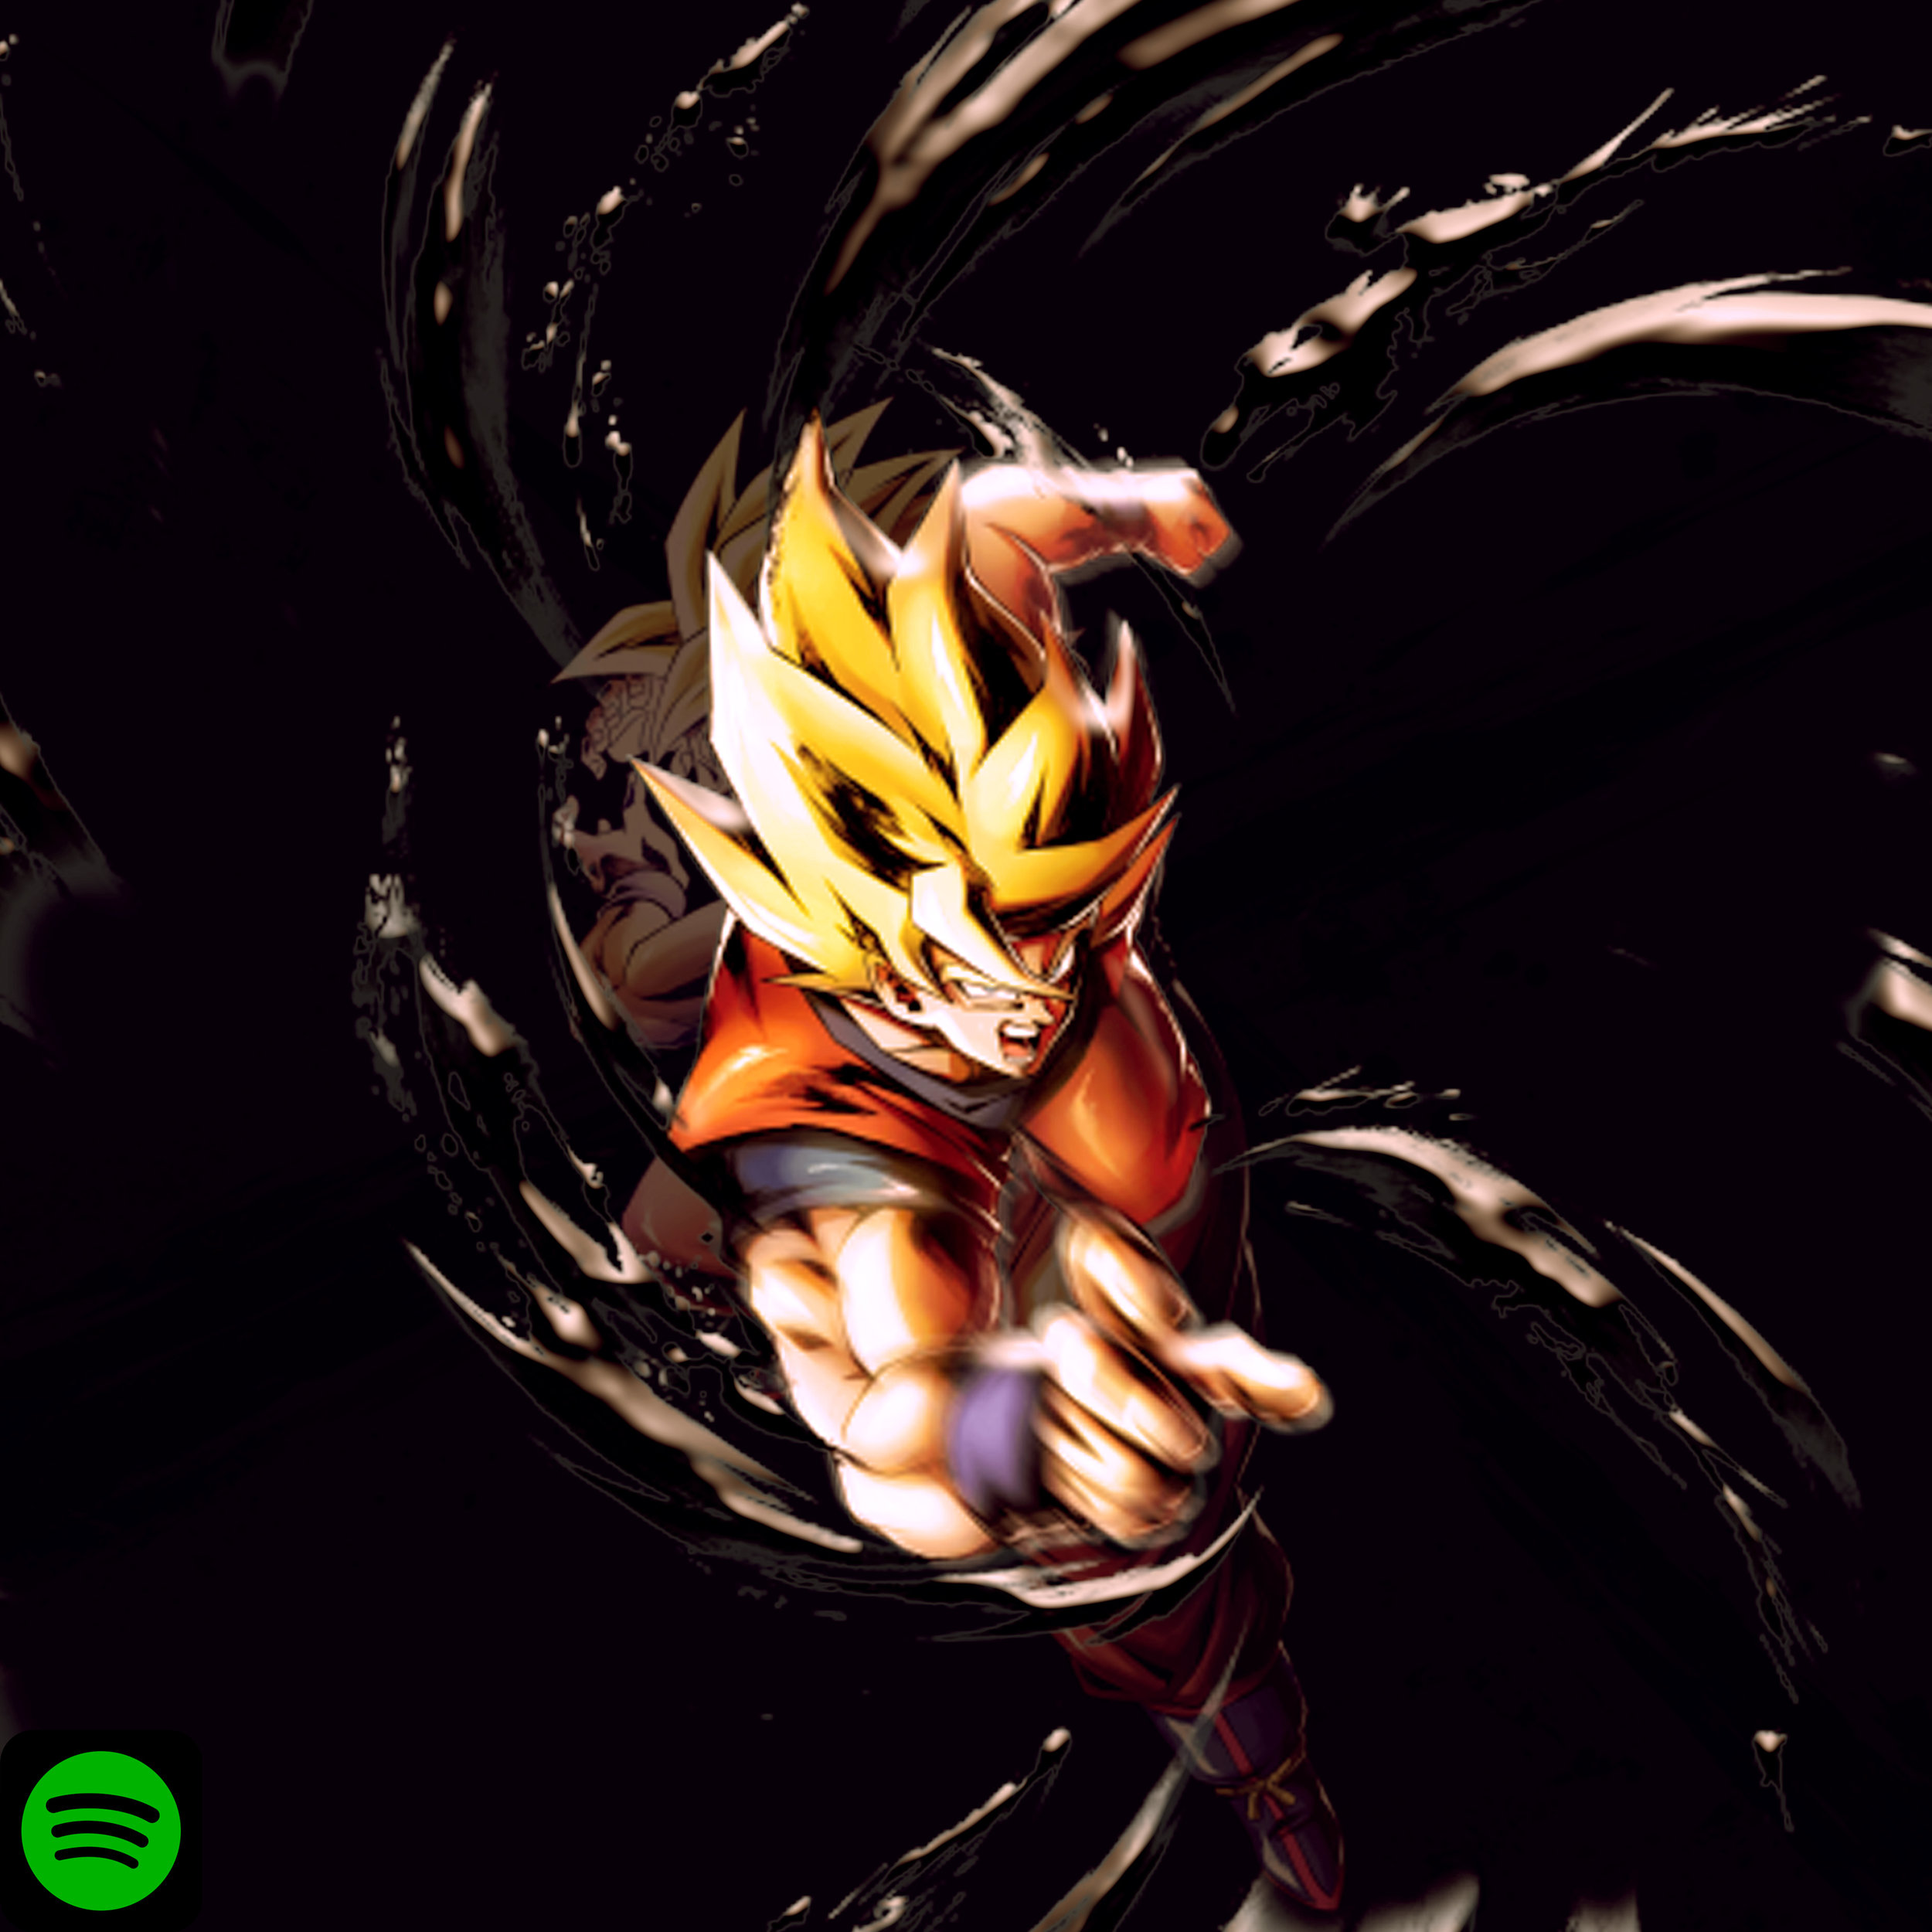 Stream Now - Find your latent power. Go Super Saiyan on the gym.